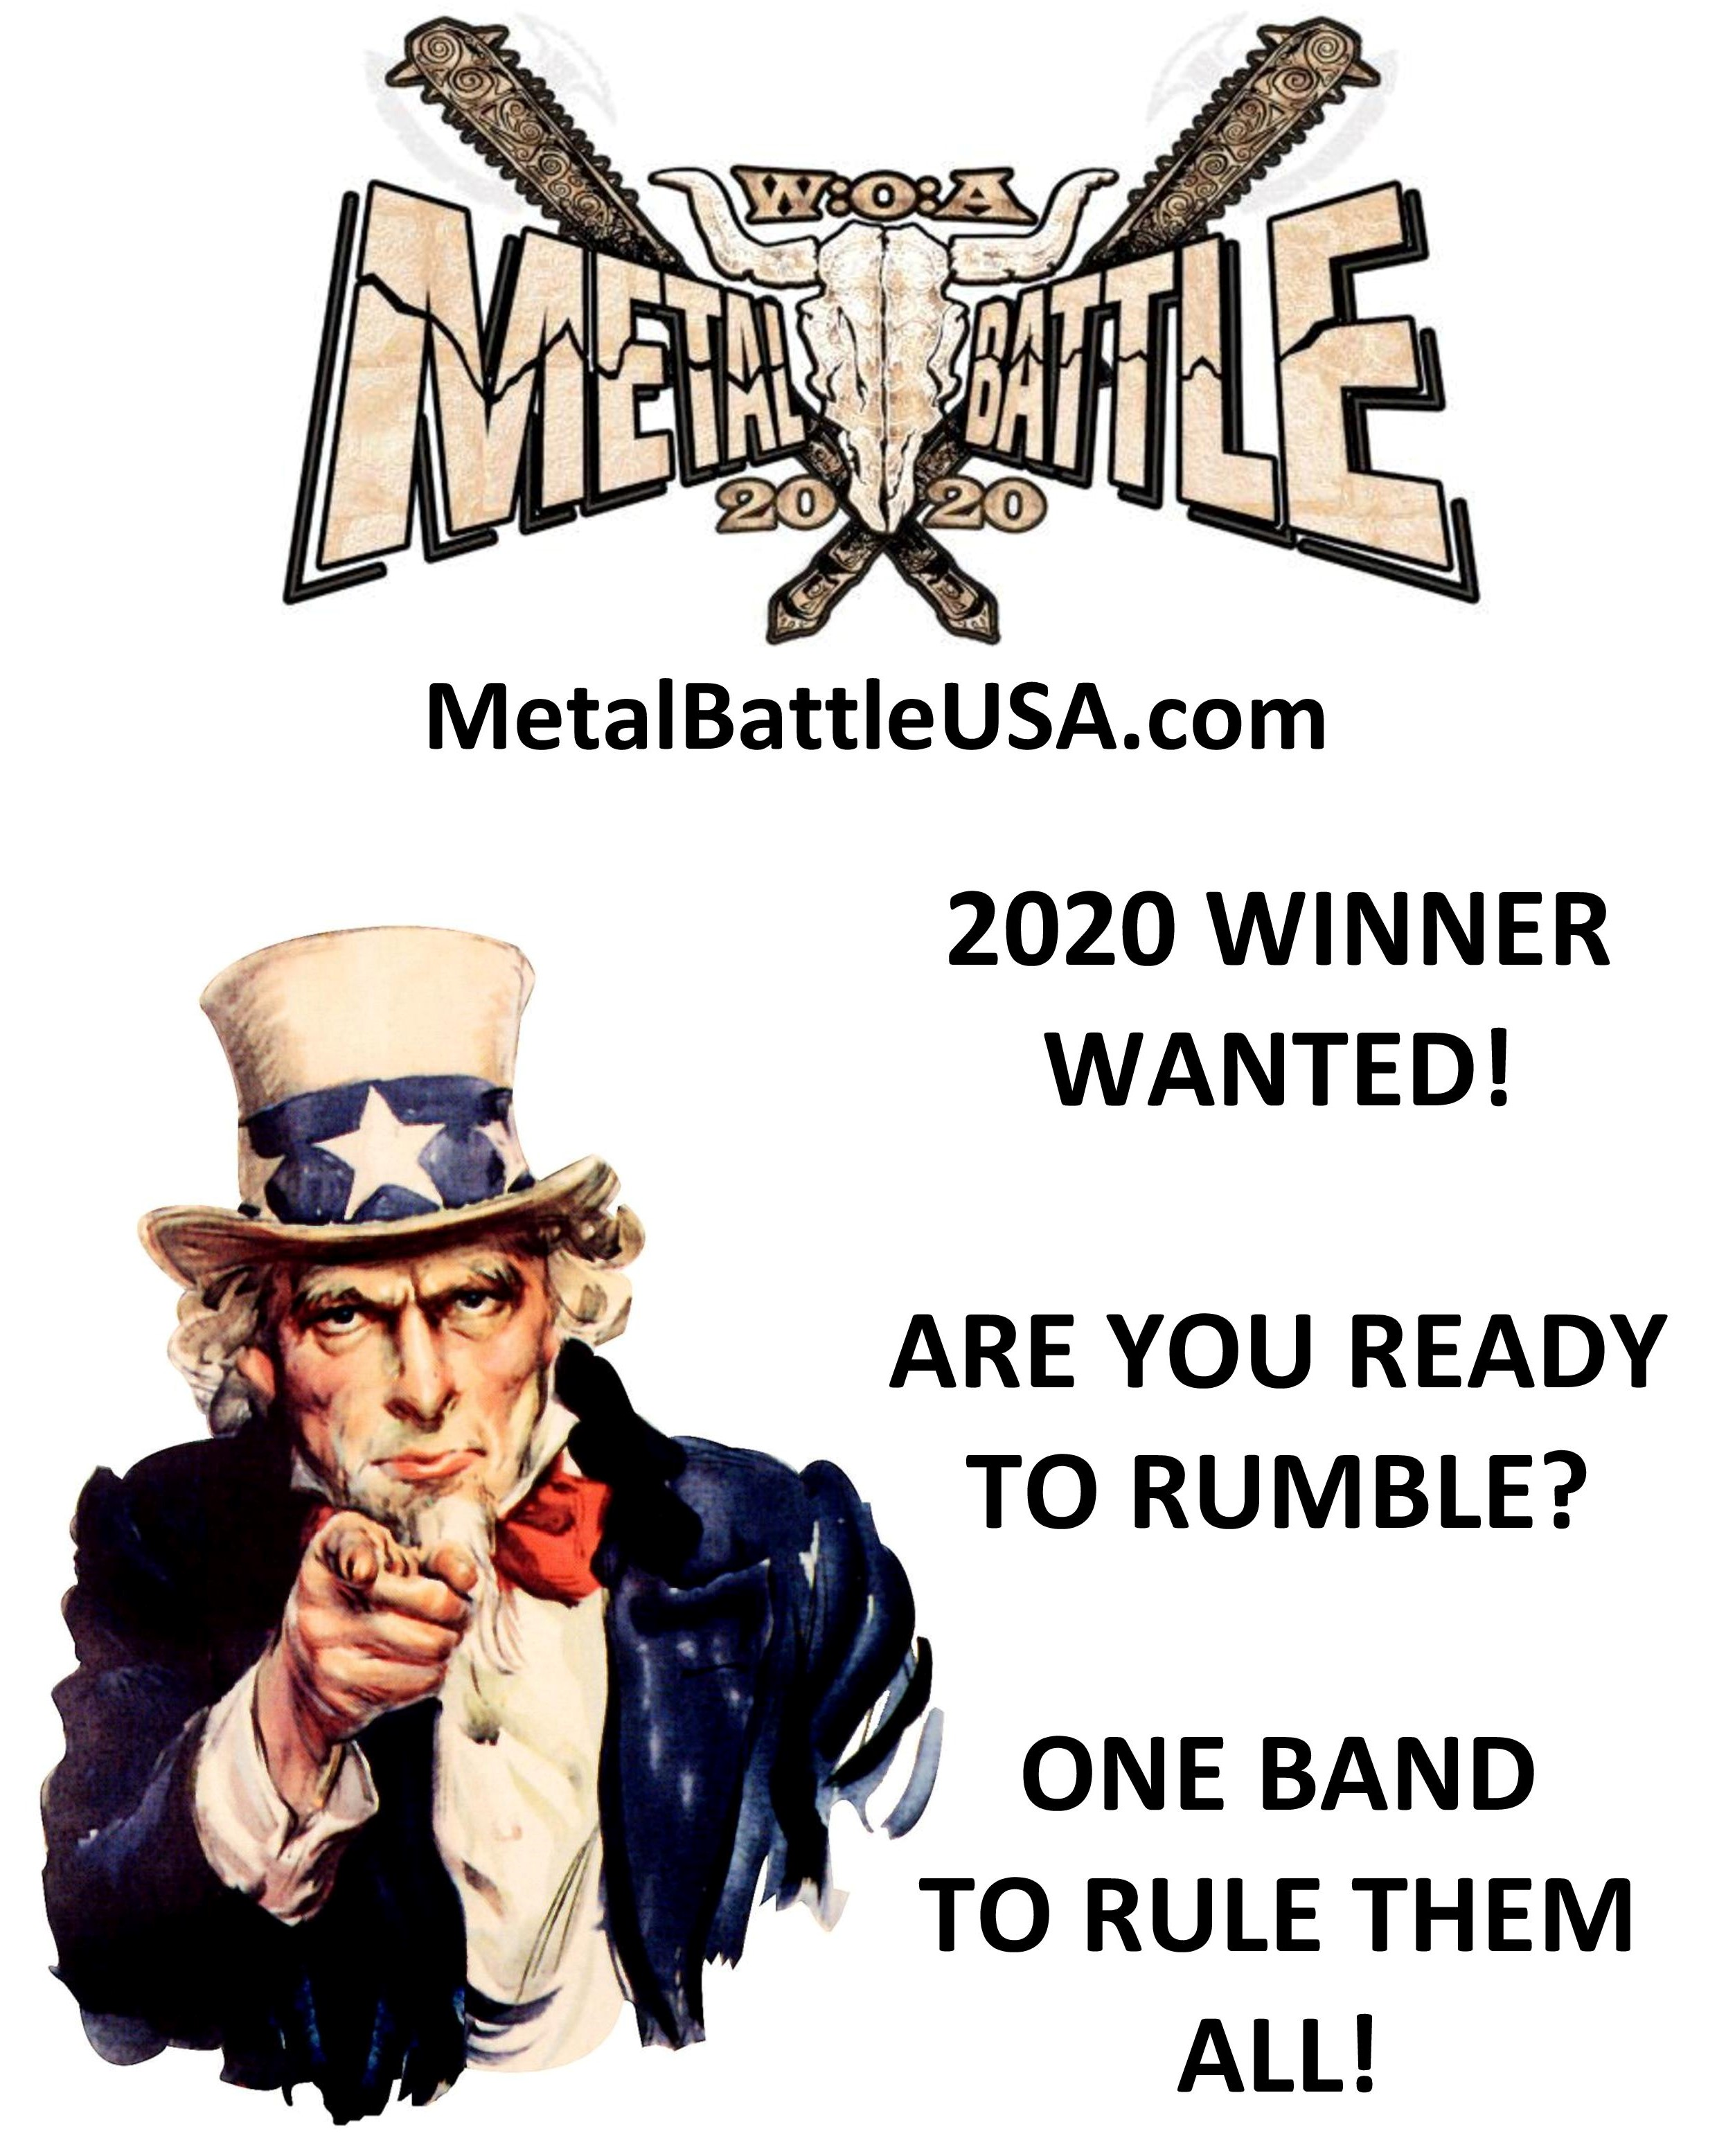 band of america 2020 results